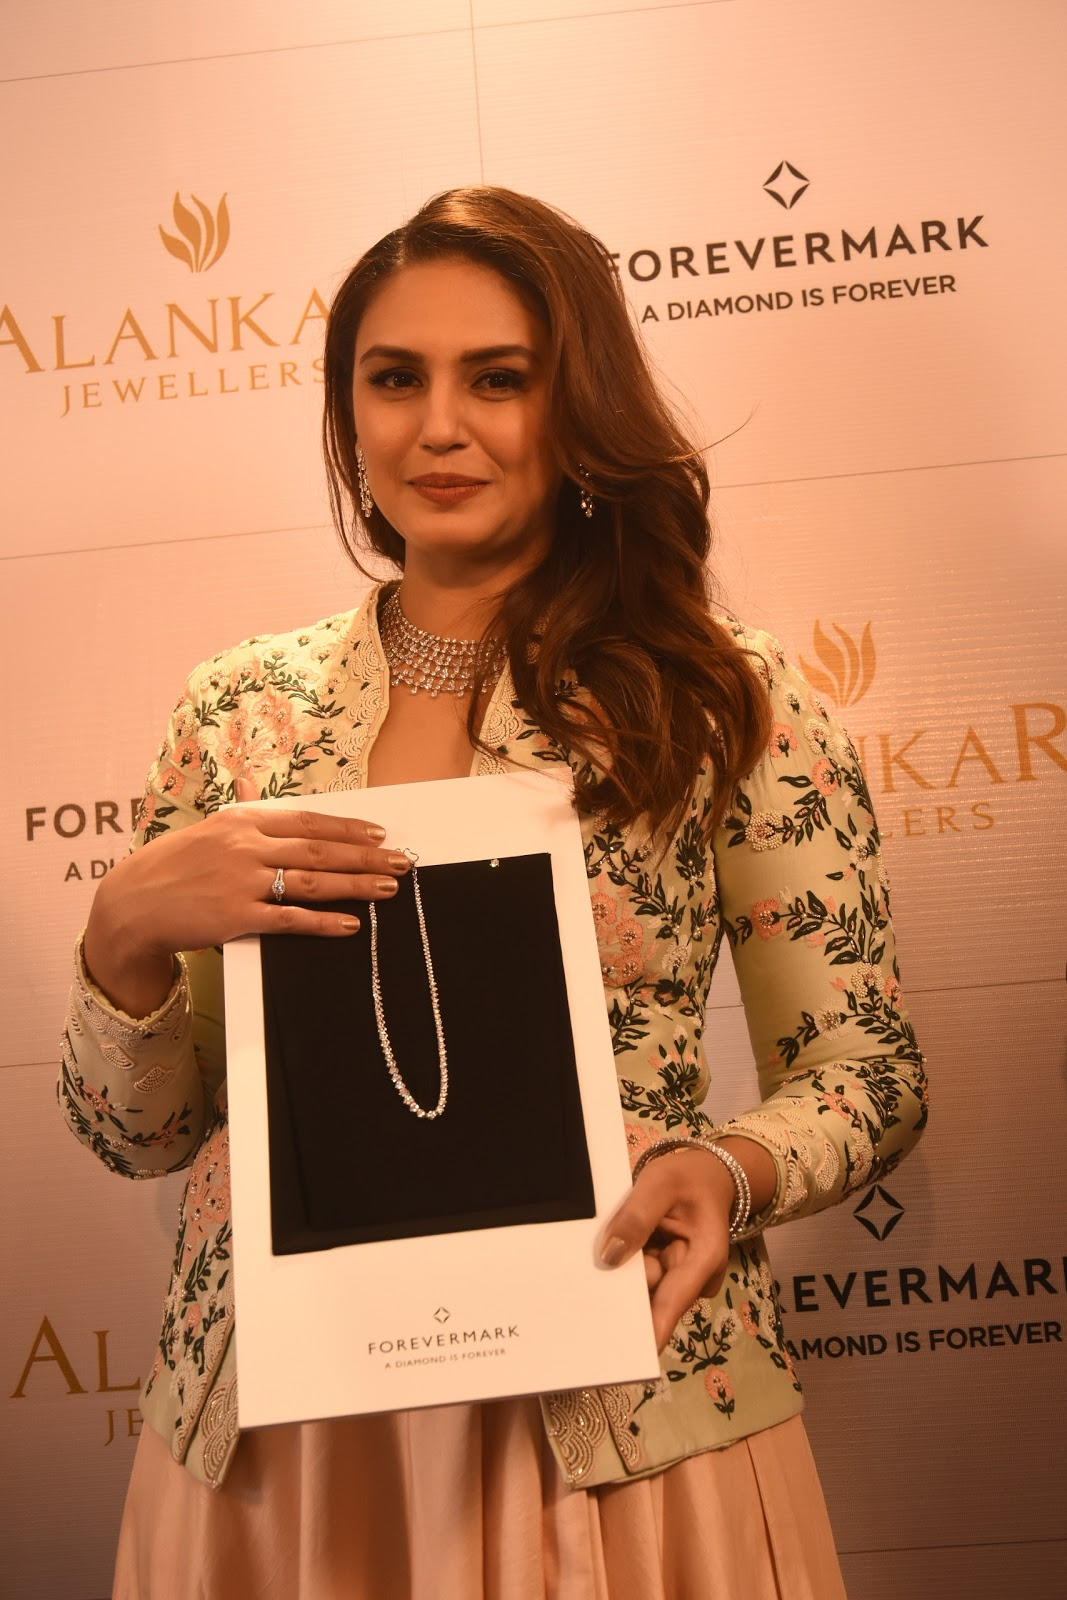 Keep smiling forevermark launches at alankar jewellers in patna patna 4th december 2017 alankar jewellers a brand that hasset unmatched standards of quality and service have partnered with forevermark the diamond malvernweather Image collections